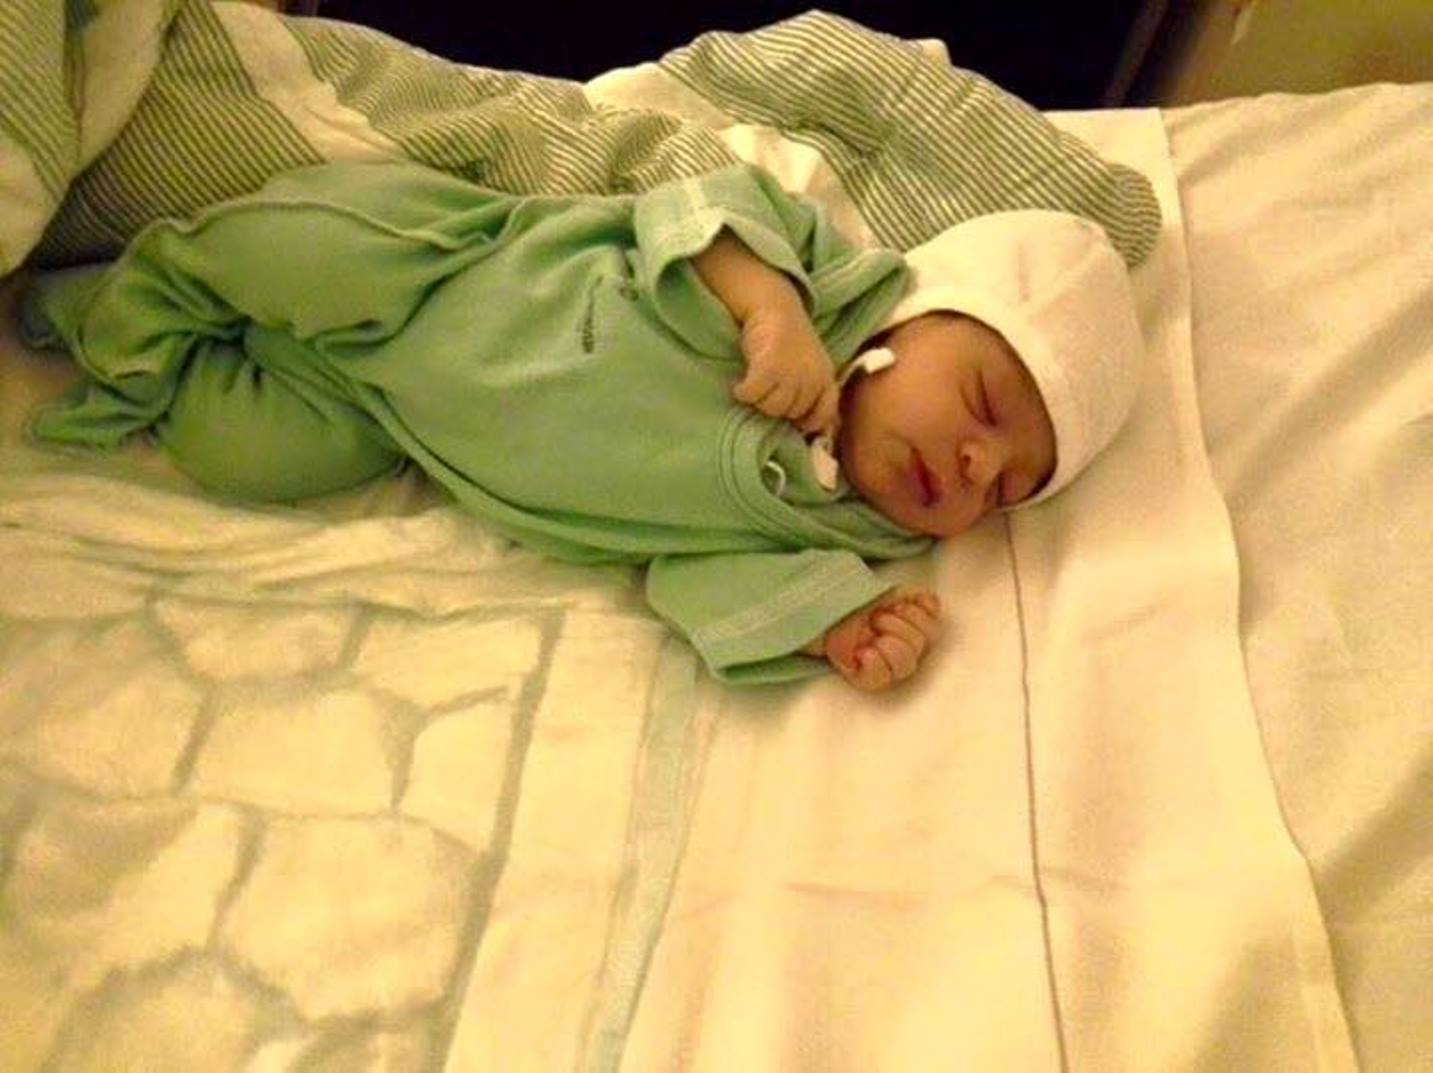 This is the Syrian couple's newborn daughter Luna. Photo via Facebook